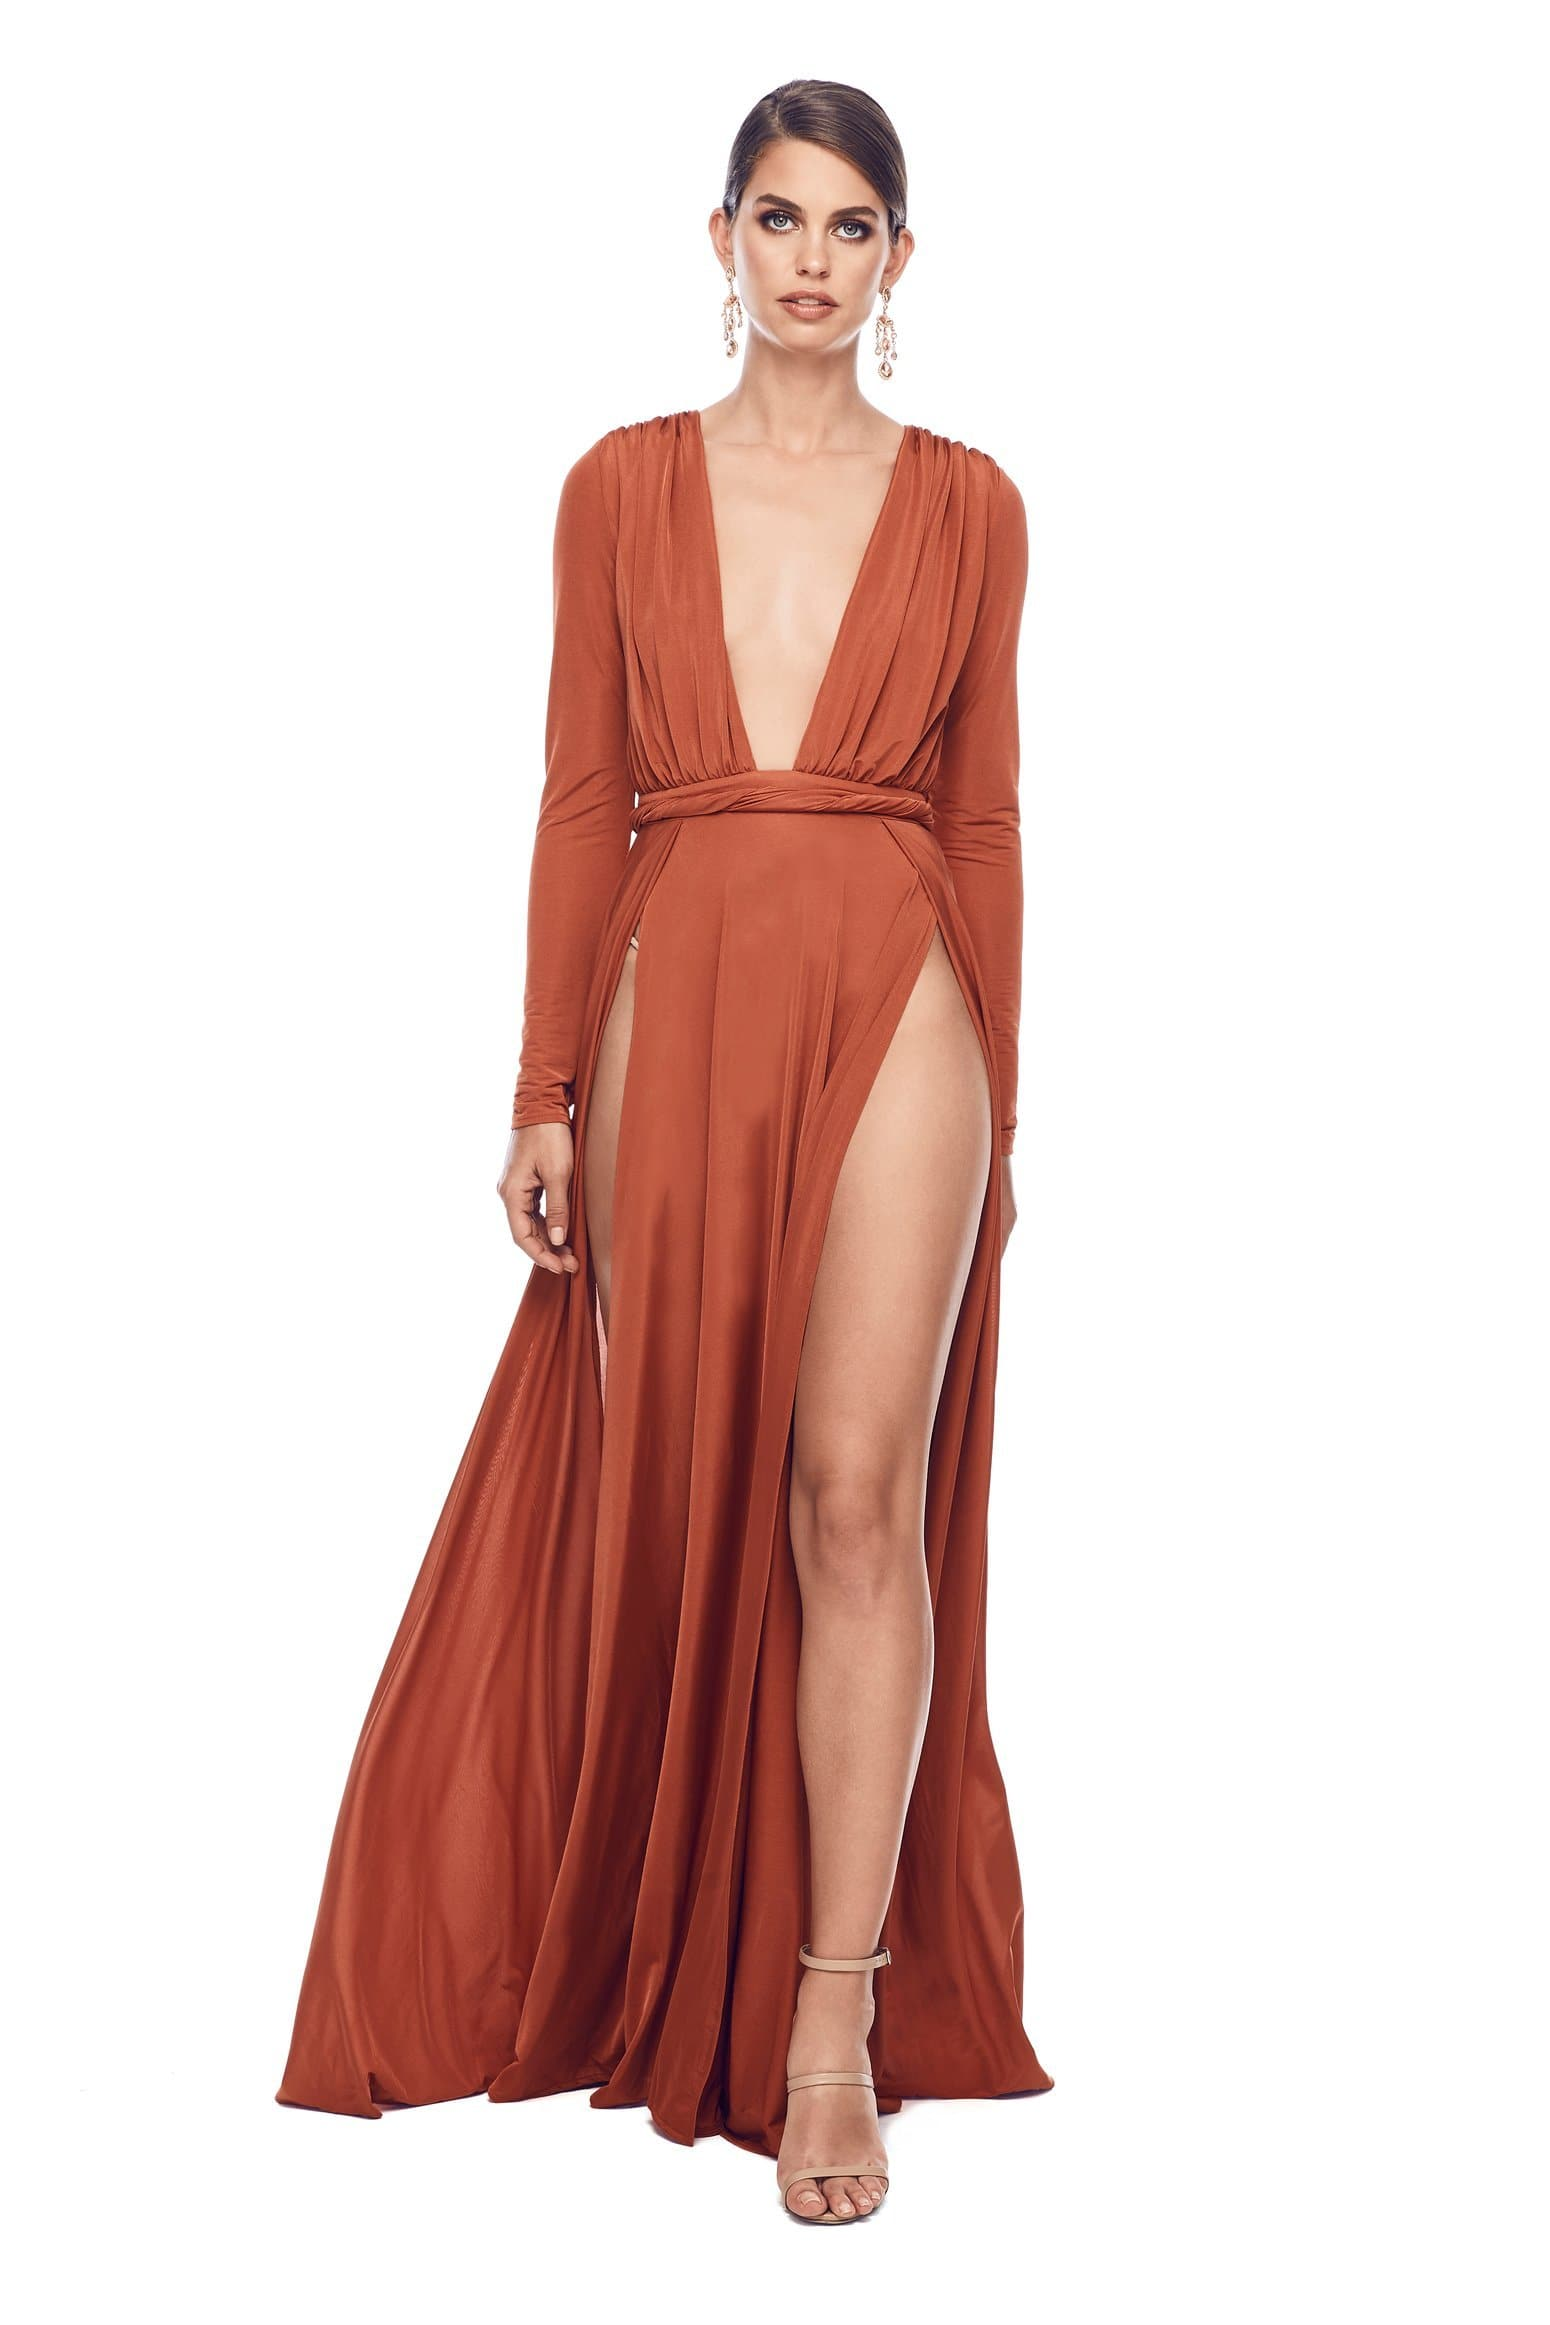 Sahara - Golden Rust Jersey Long Sleeve Gown with Deep Plunge Neckline